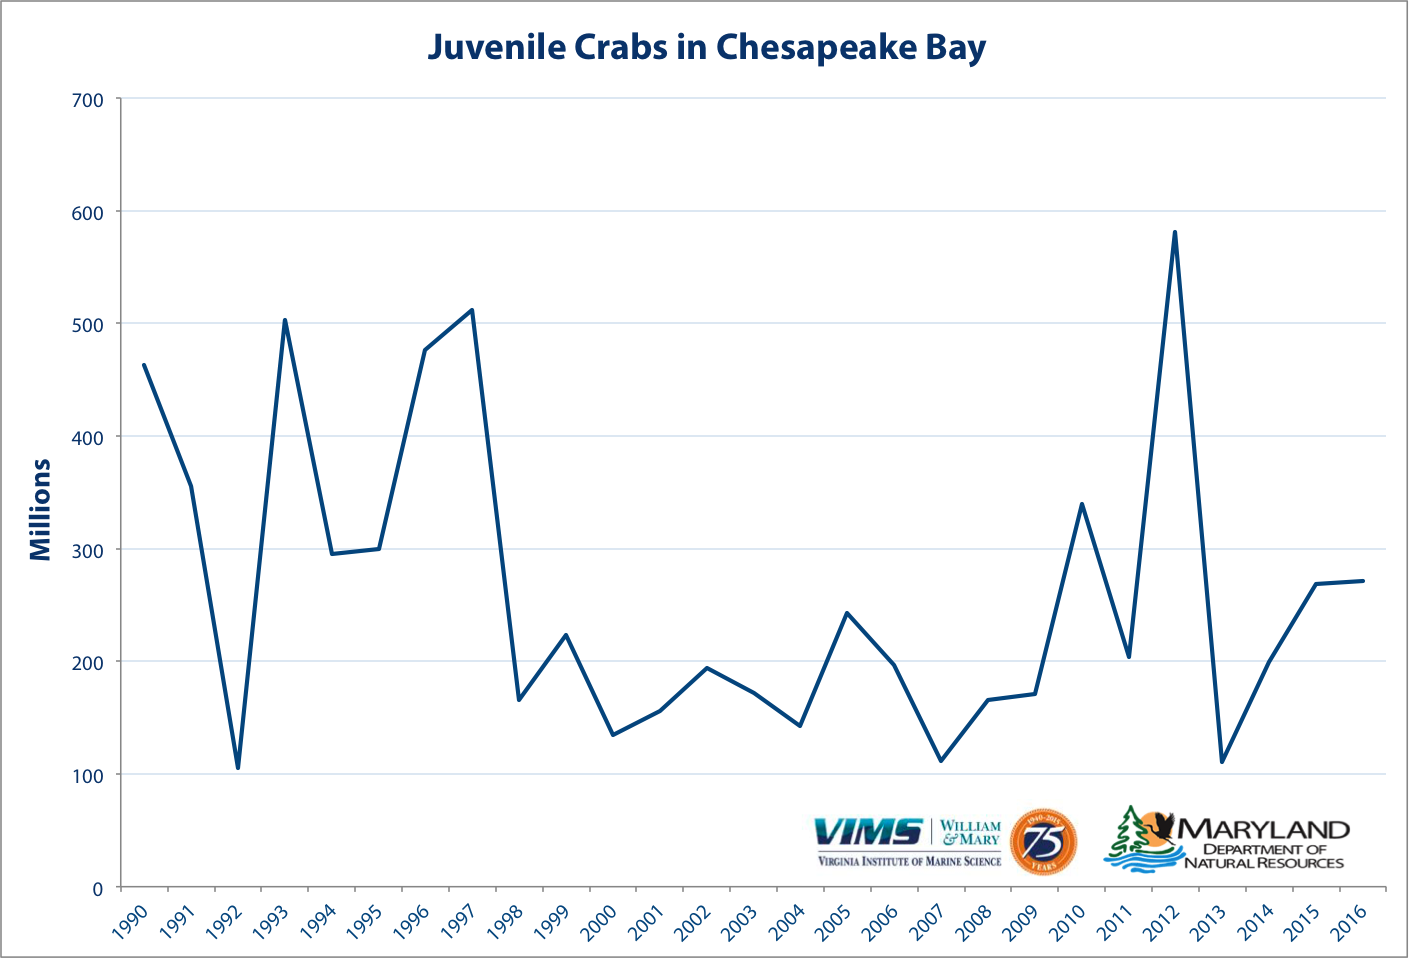 Number of juvenile blue crabs in Chesapeake Bay in millions (both sexes). Click for larger image.